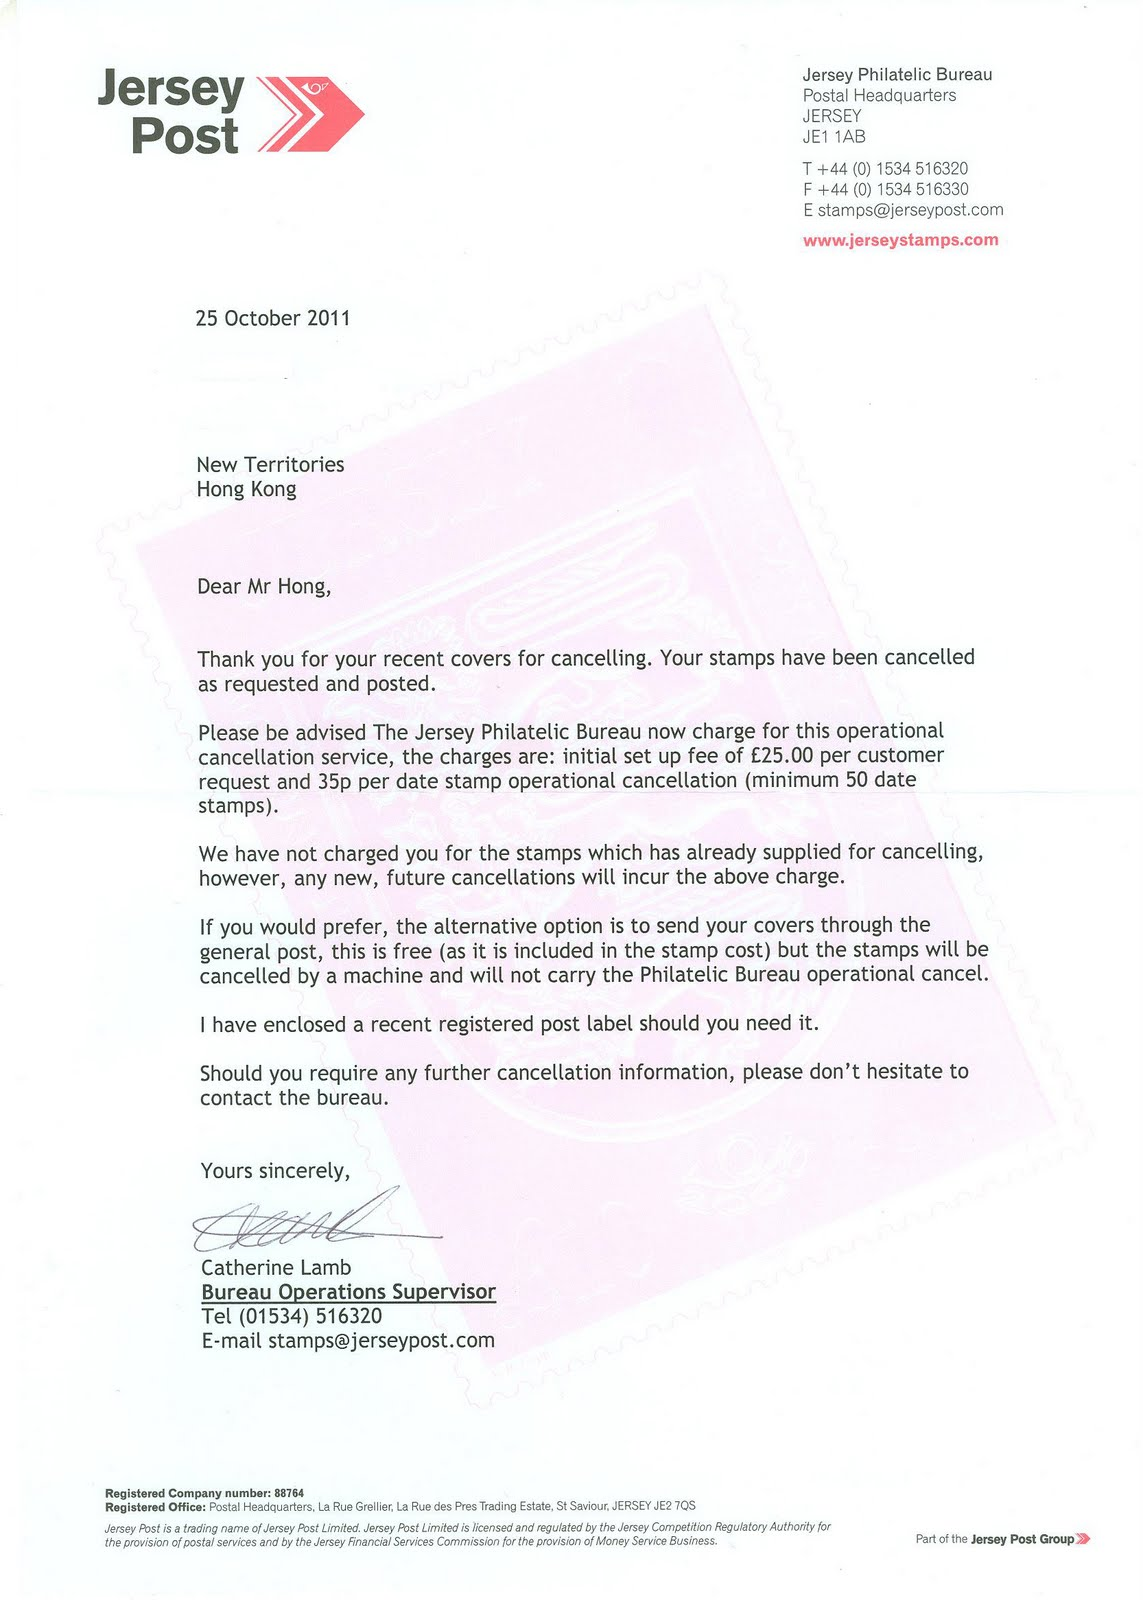 termination of service letter